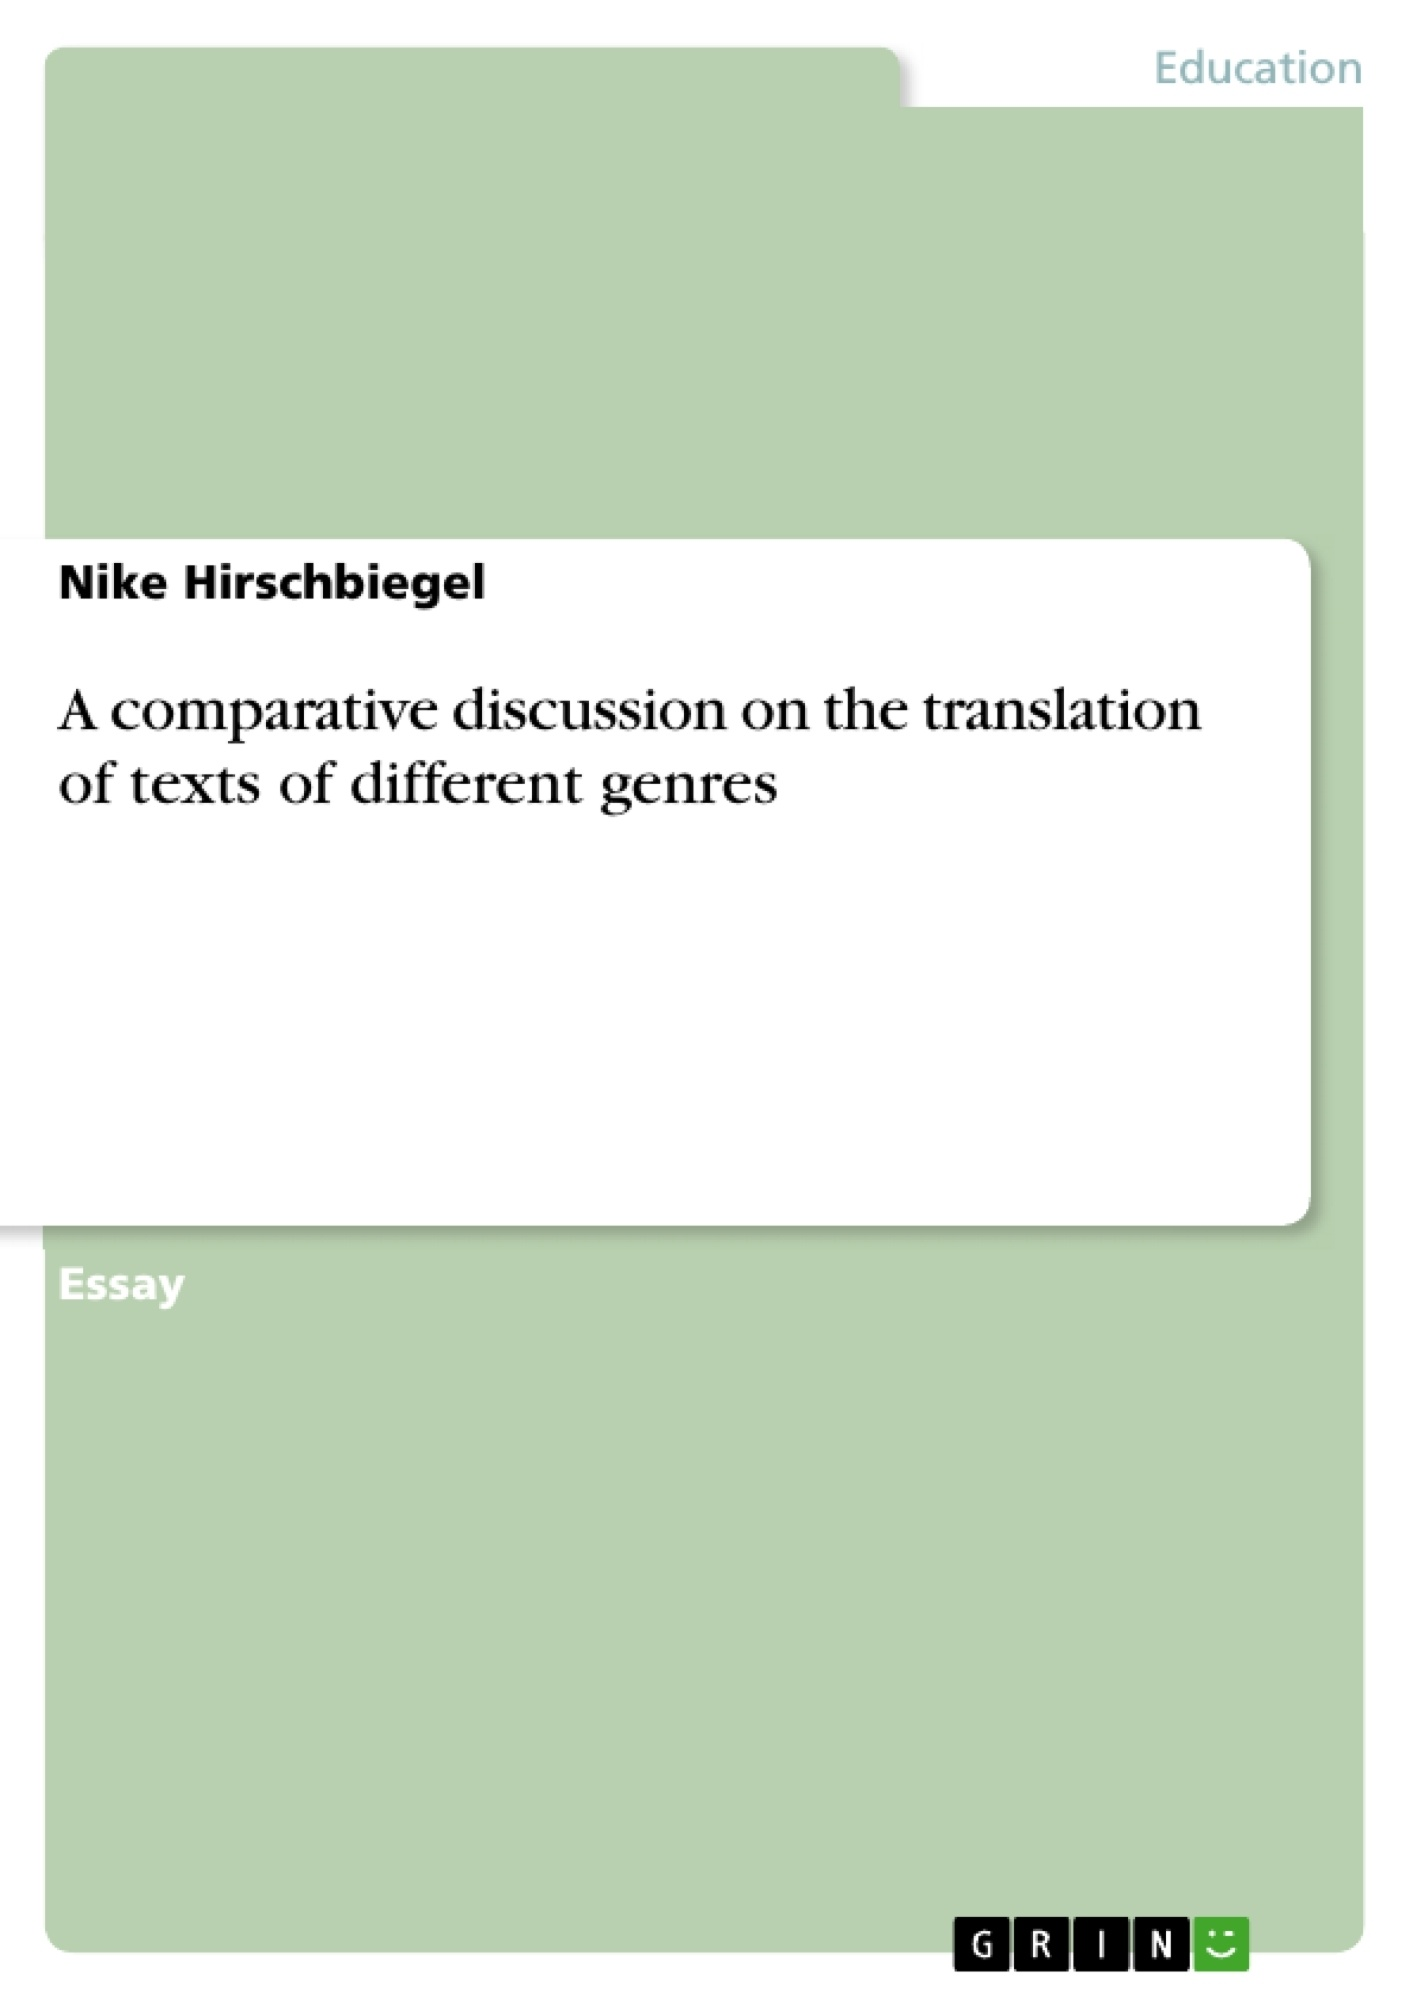 Title: A comparative discussion on the translation of texts of different genres